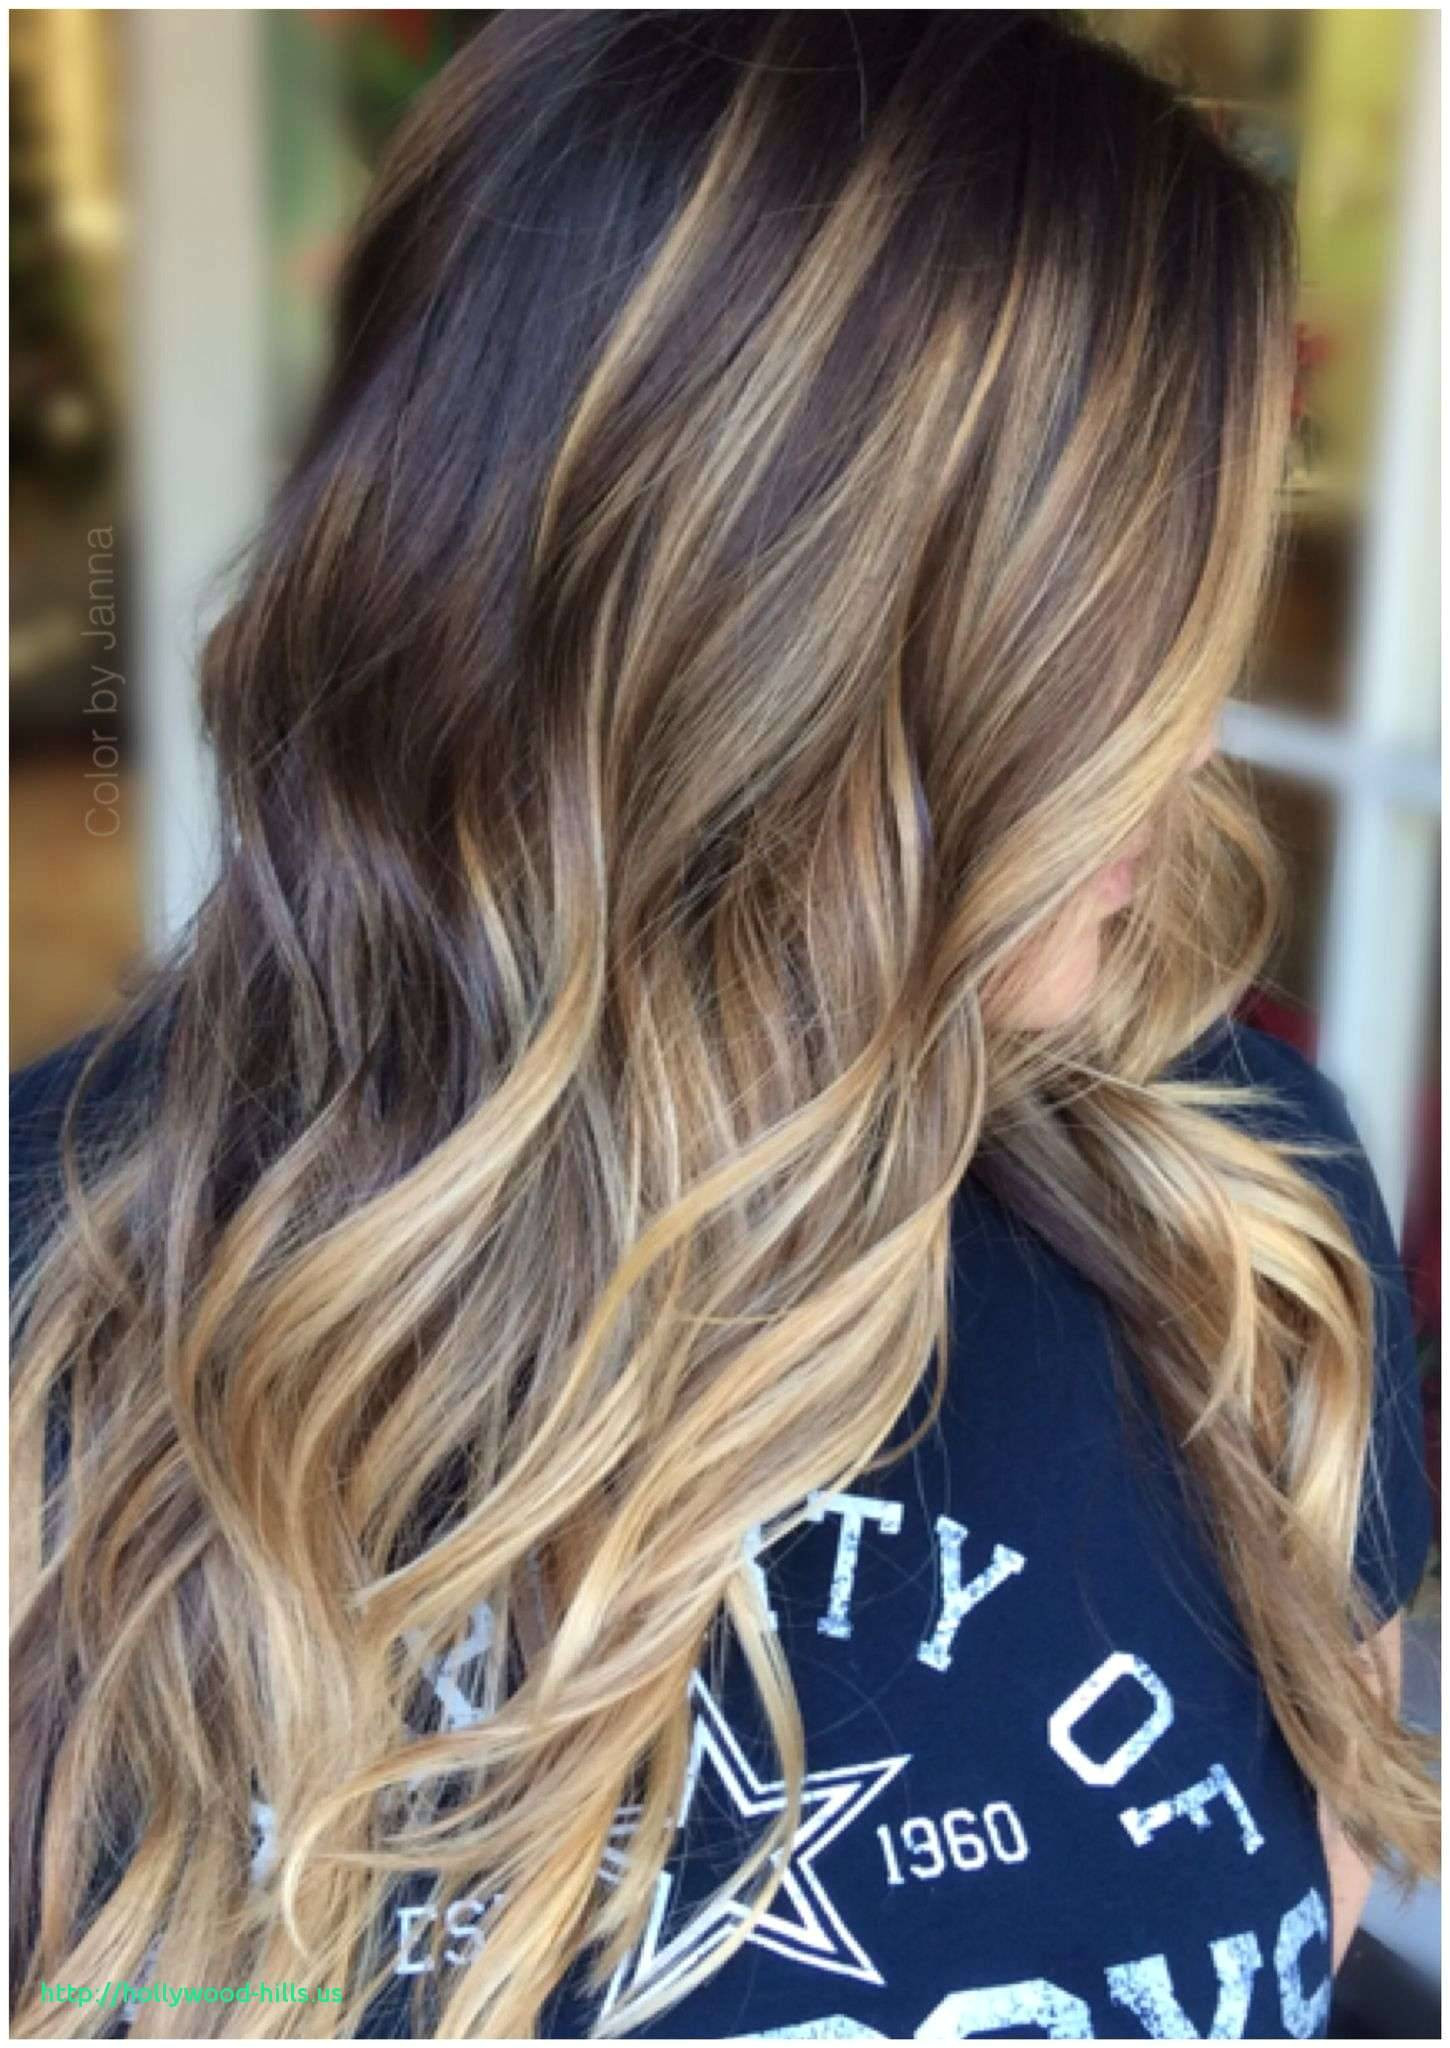 Nice Hairstyles for Short Hair New Cute Hair Highlights for Brunettes Inspirational I Pinimg 1200x 0d